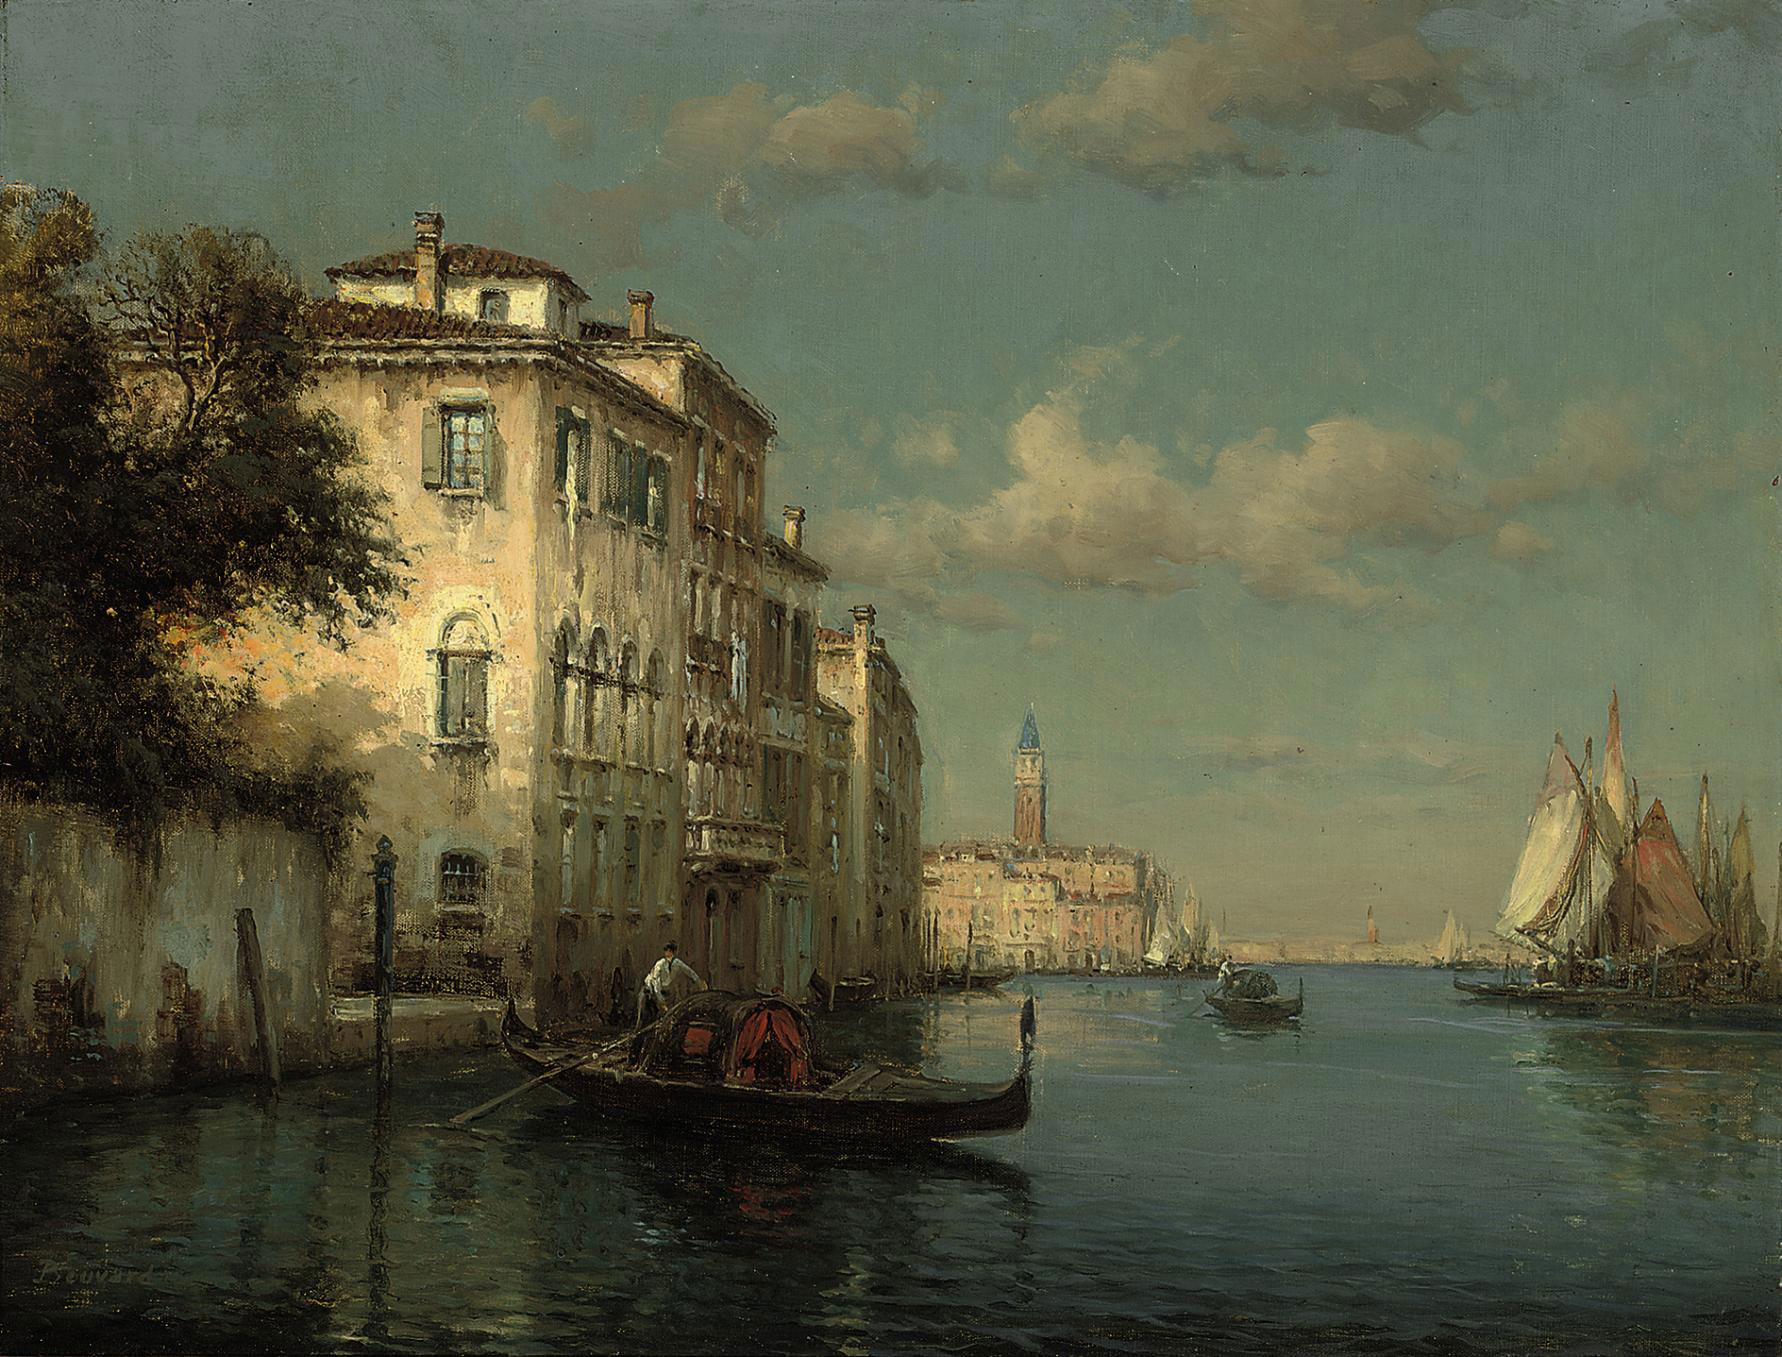 GONDOLIERS ON THE GRAND CANAL, VENICE